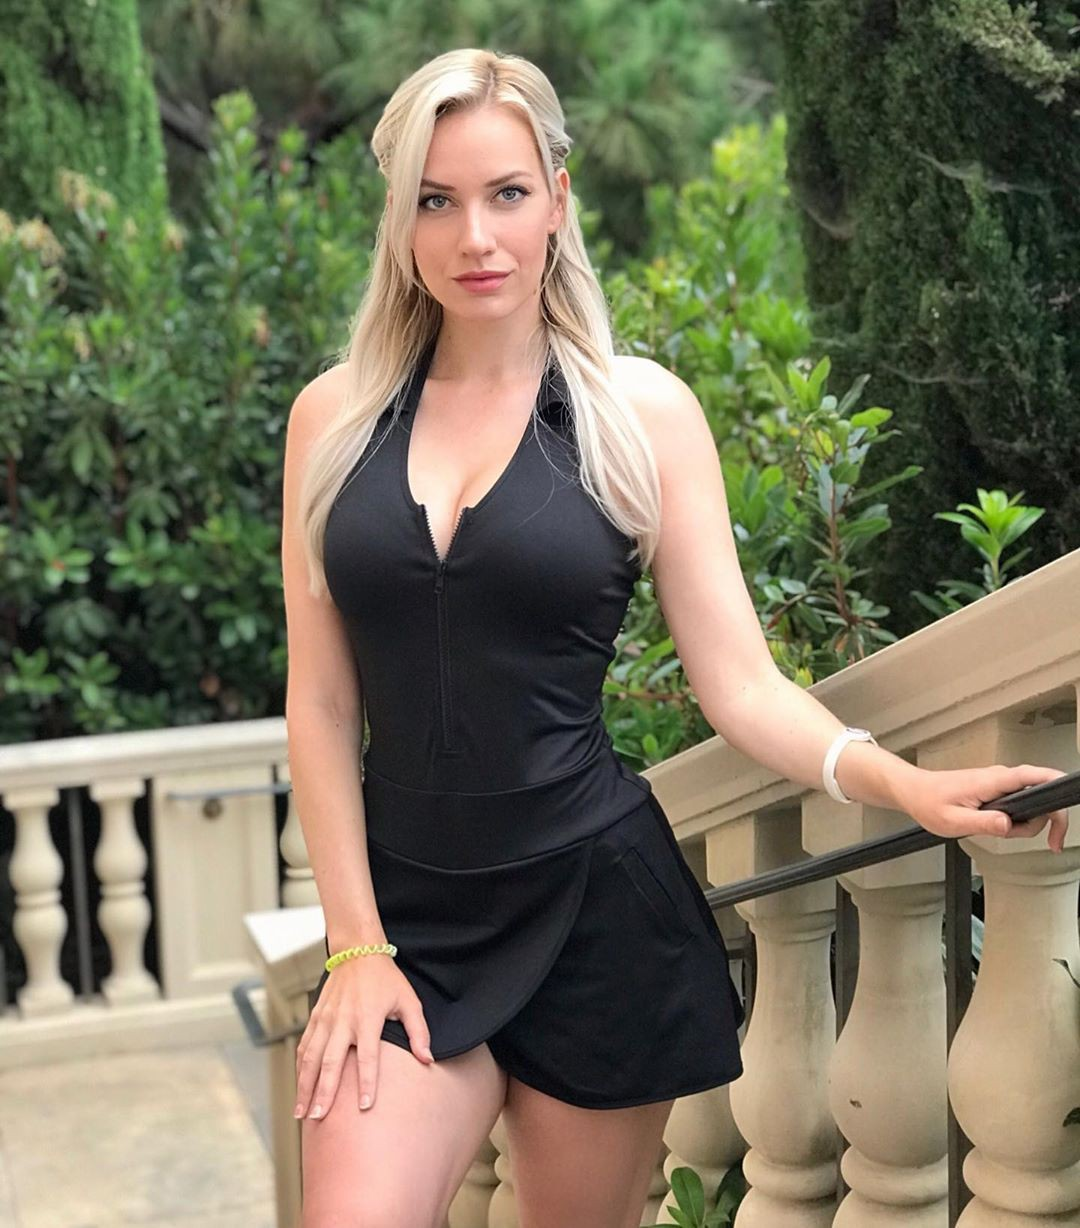 Valuable tips for Paige Spiranac, Professional golfer